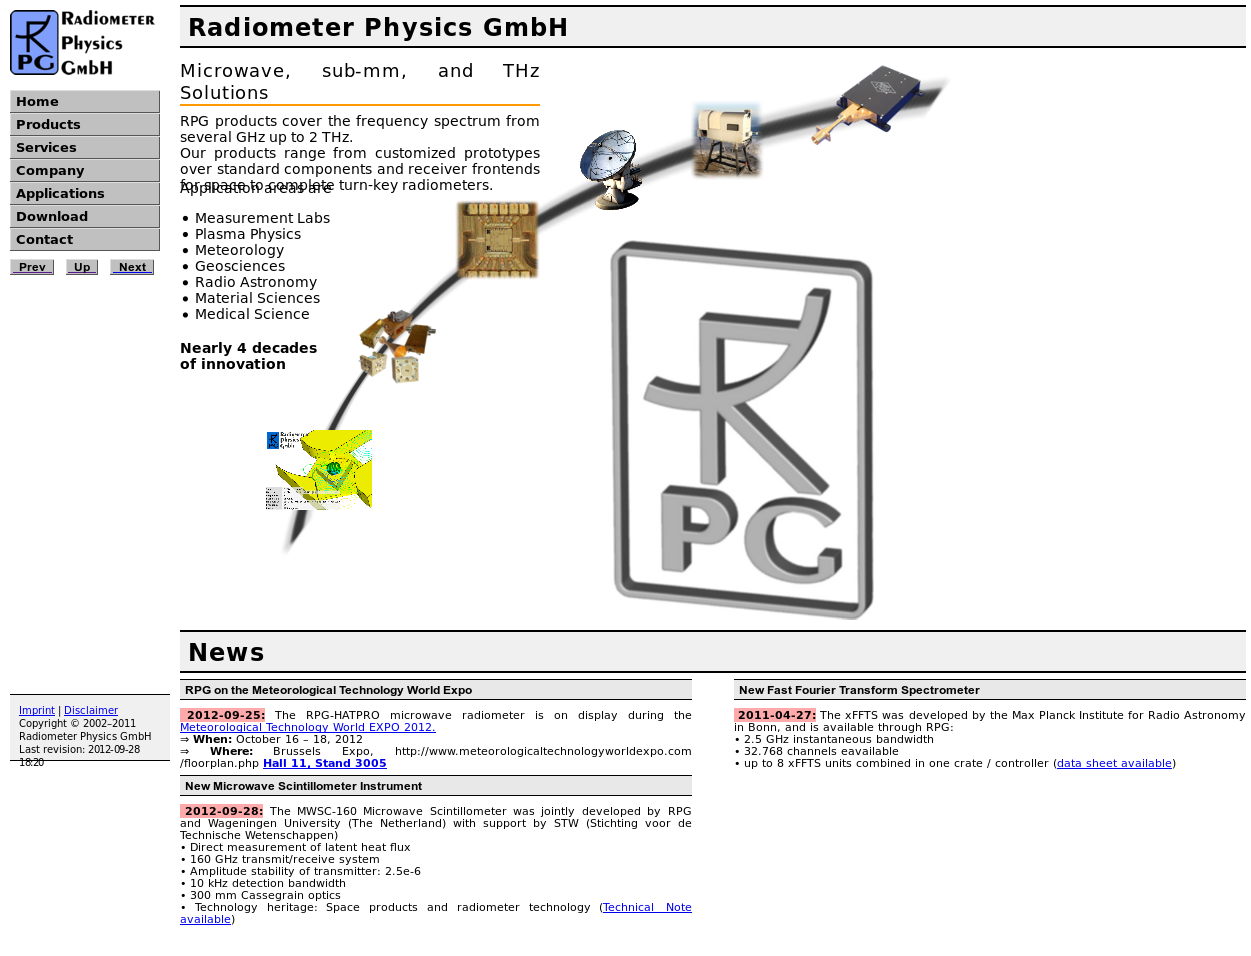 Radiometer Physics Competitors, Revenue and Employees - Owler